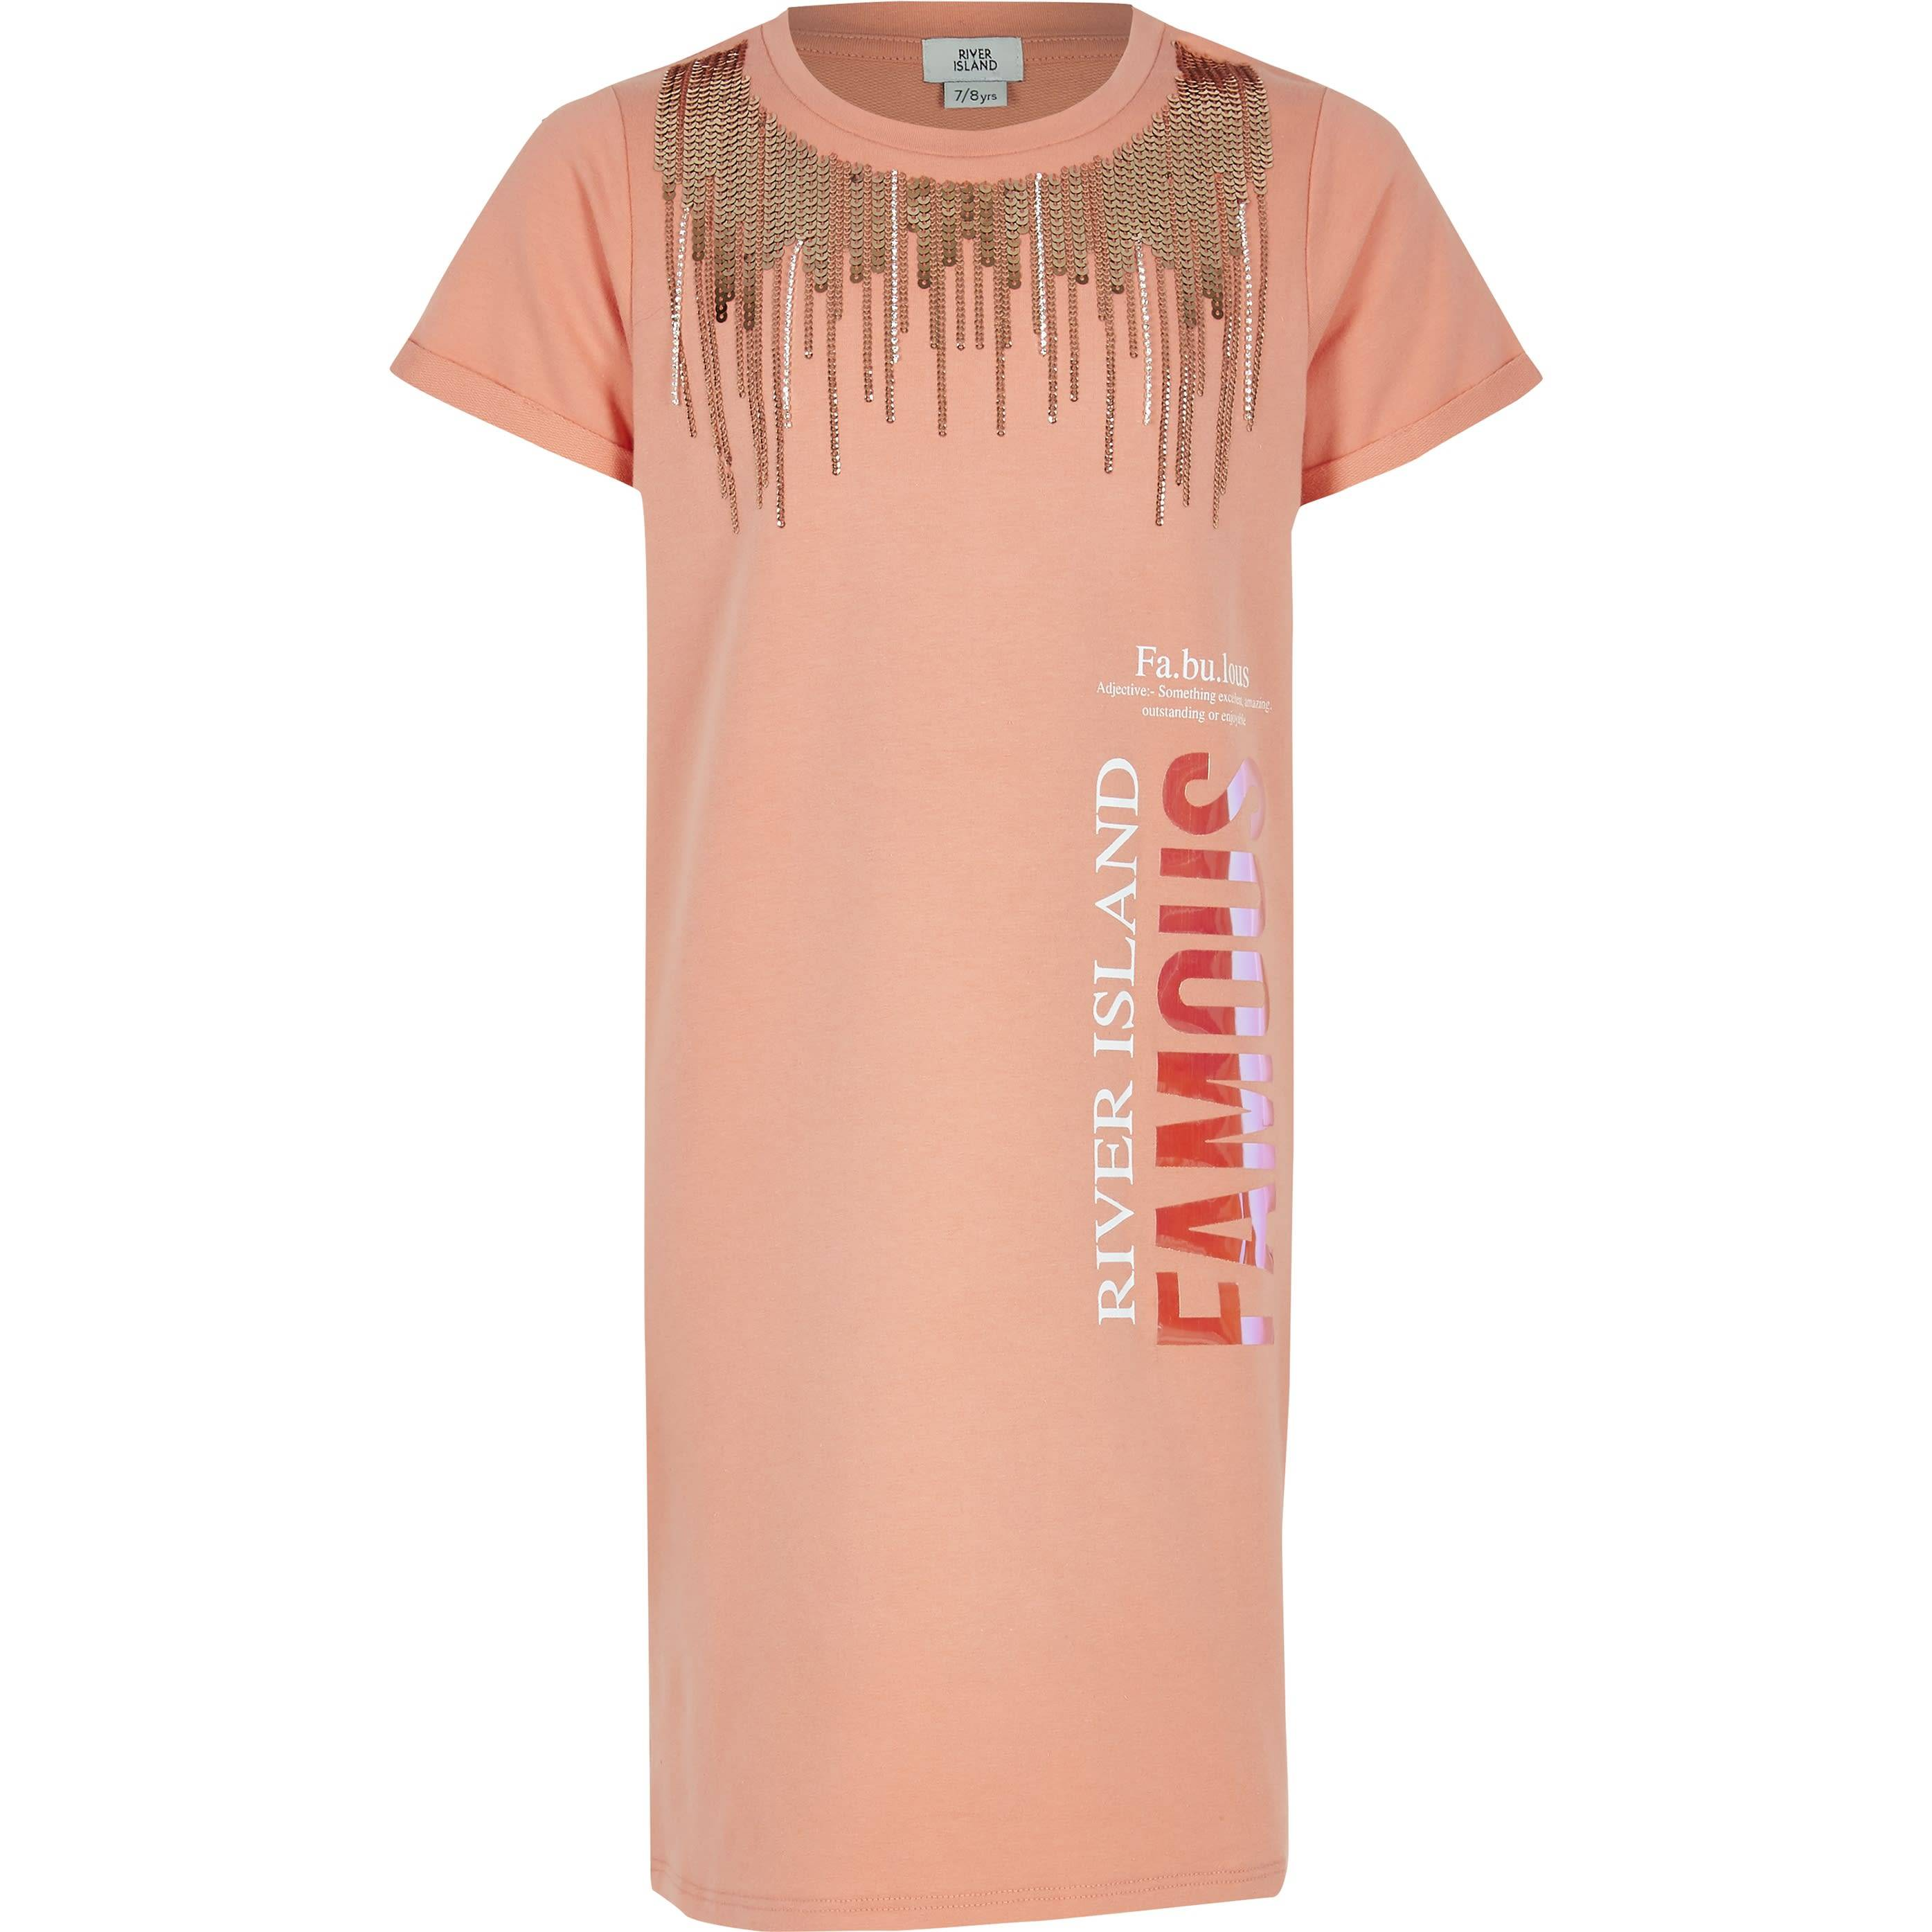 River Island Girls Orange Famous embellished T-shirt dress (7-8 Yrs)